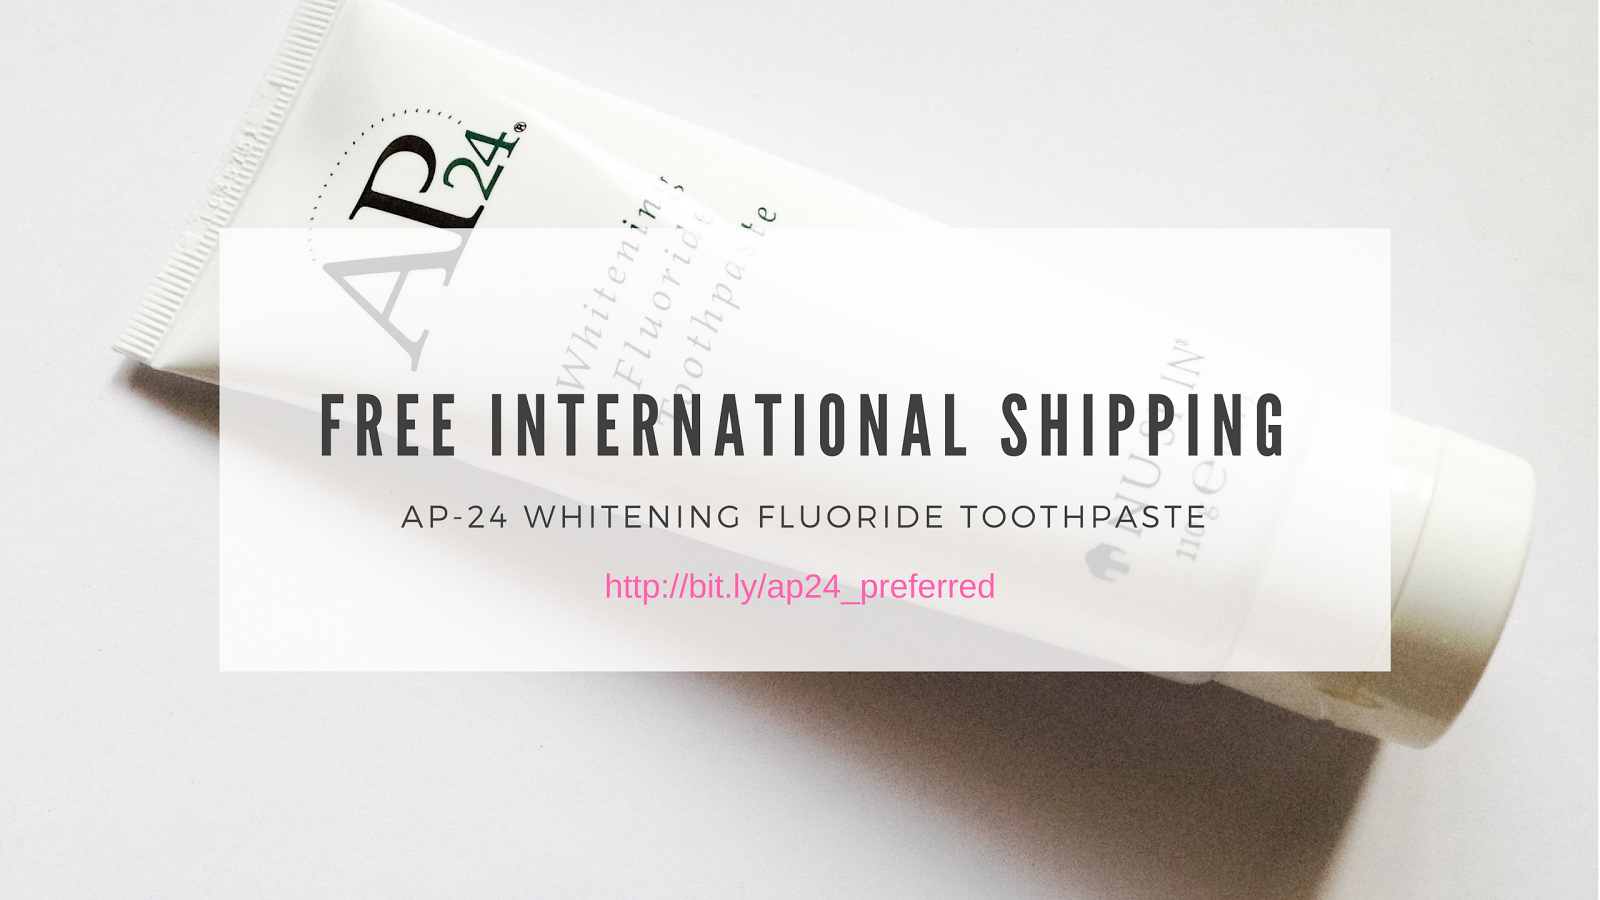 AP24 Whitening Fluoride Toothpaste Free International Shipping: How ...